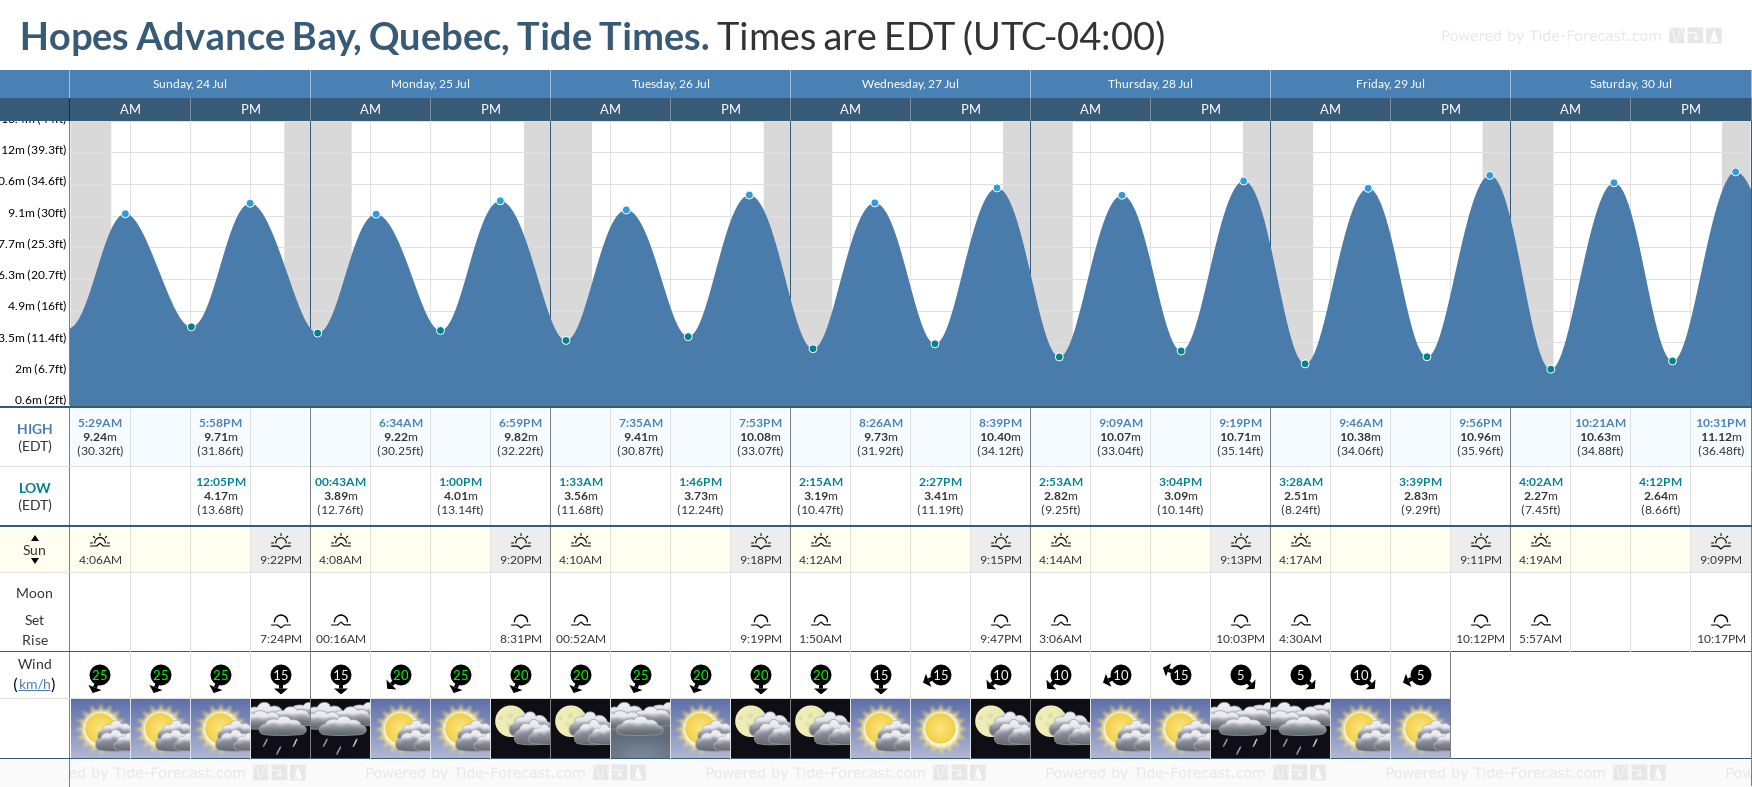 Hopes Advance Bay, Quebec Tide Chart including high and low tide tide times for the next 7 days